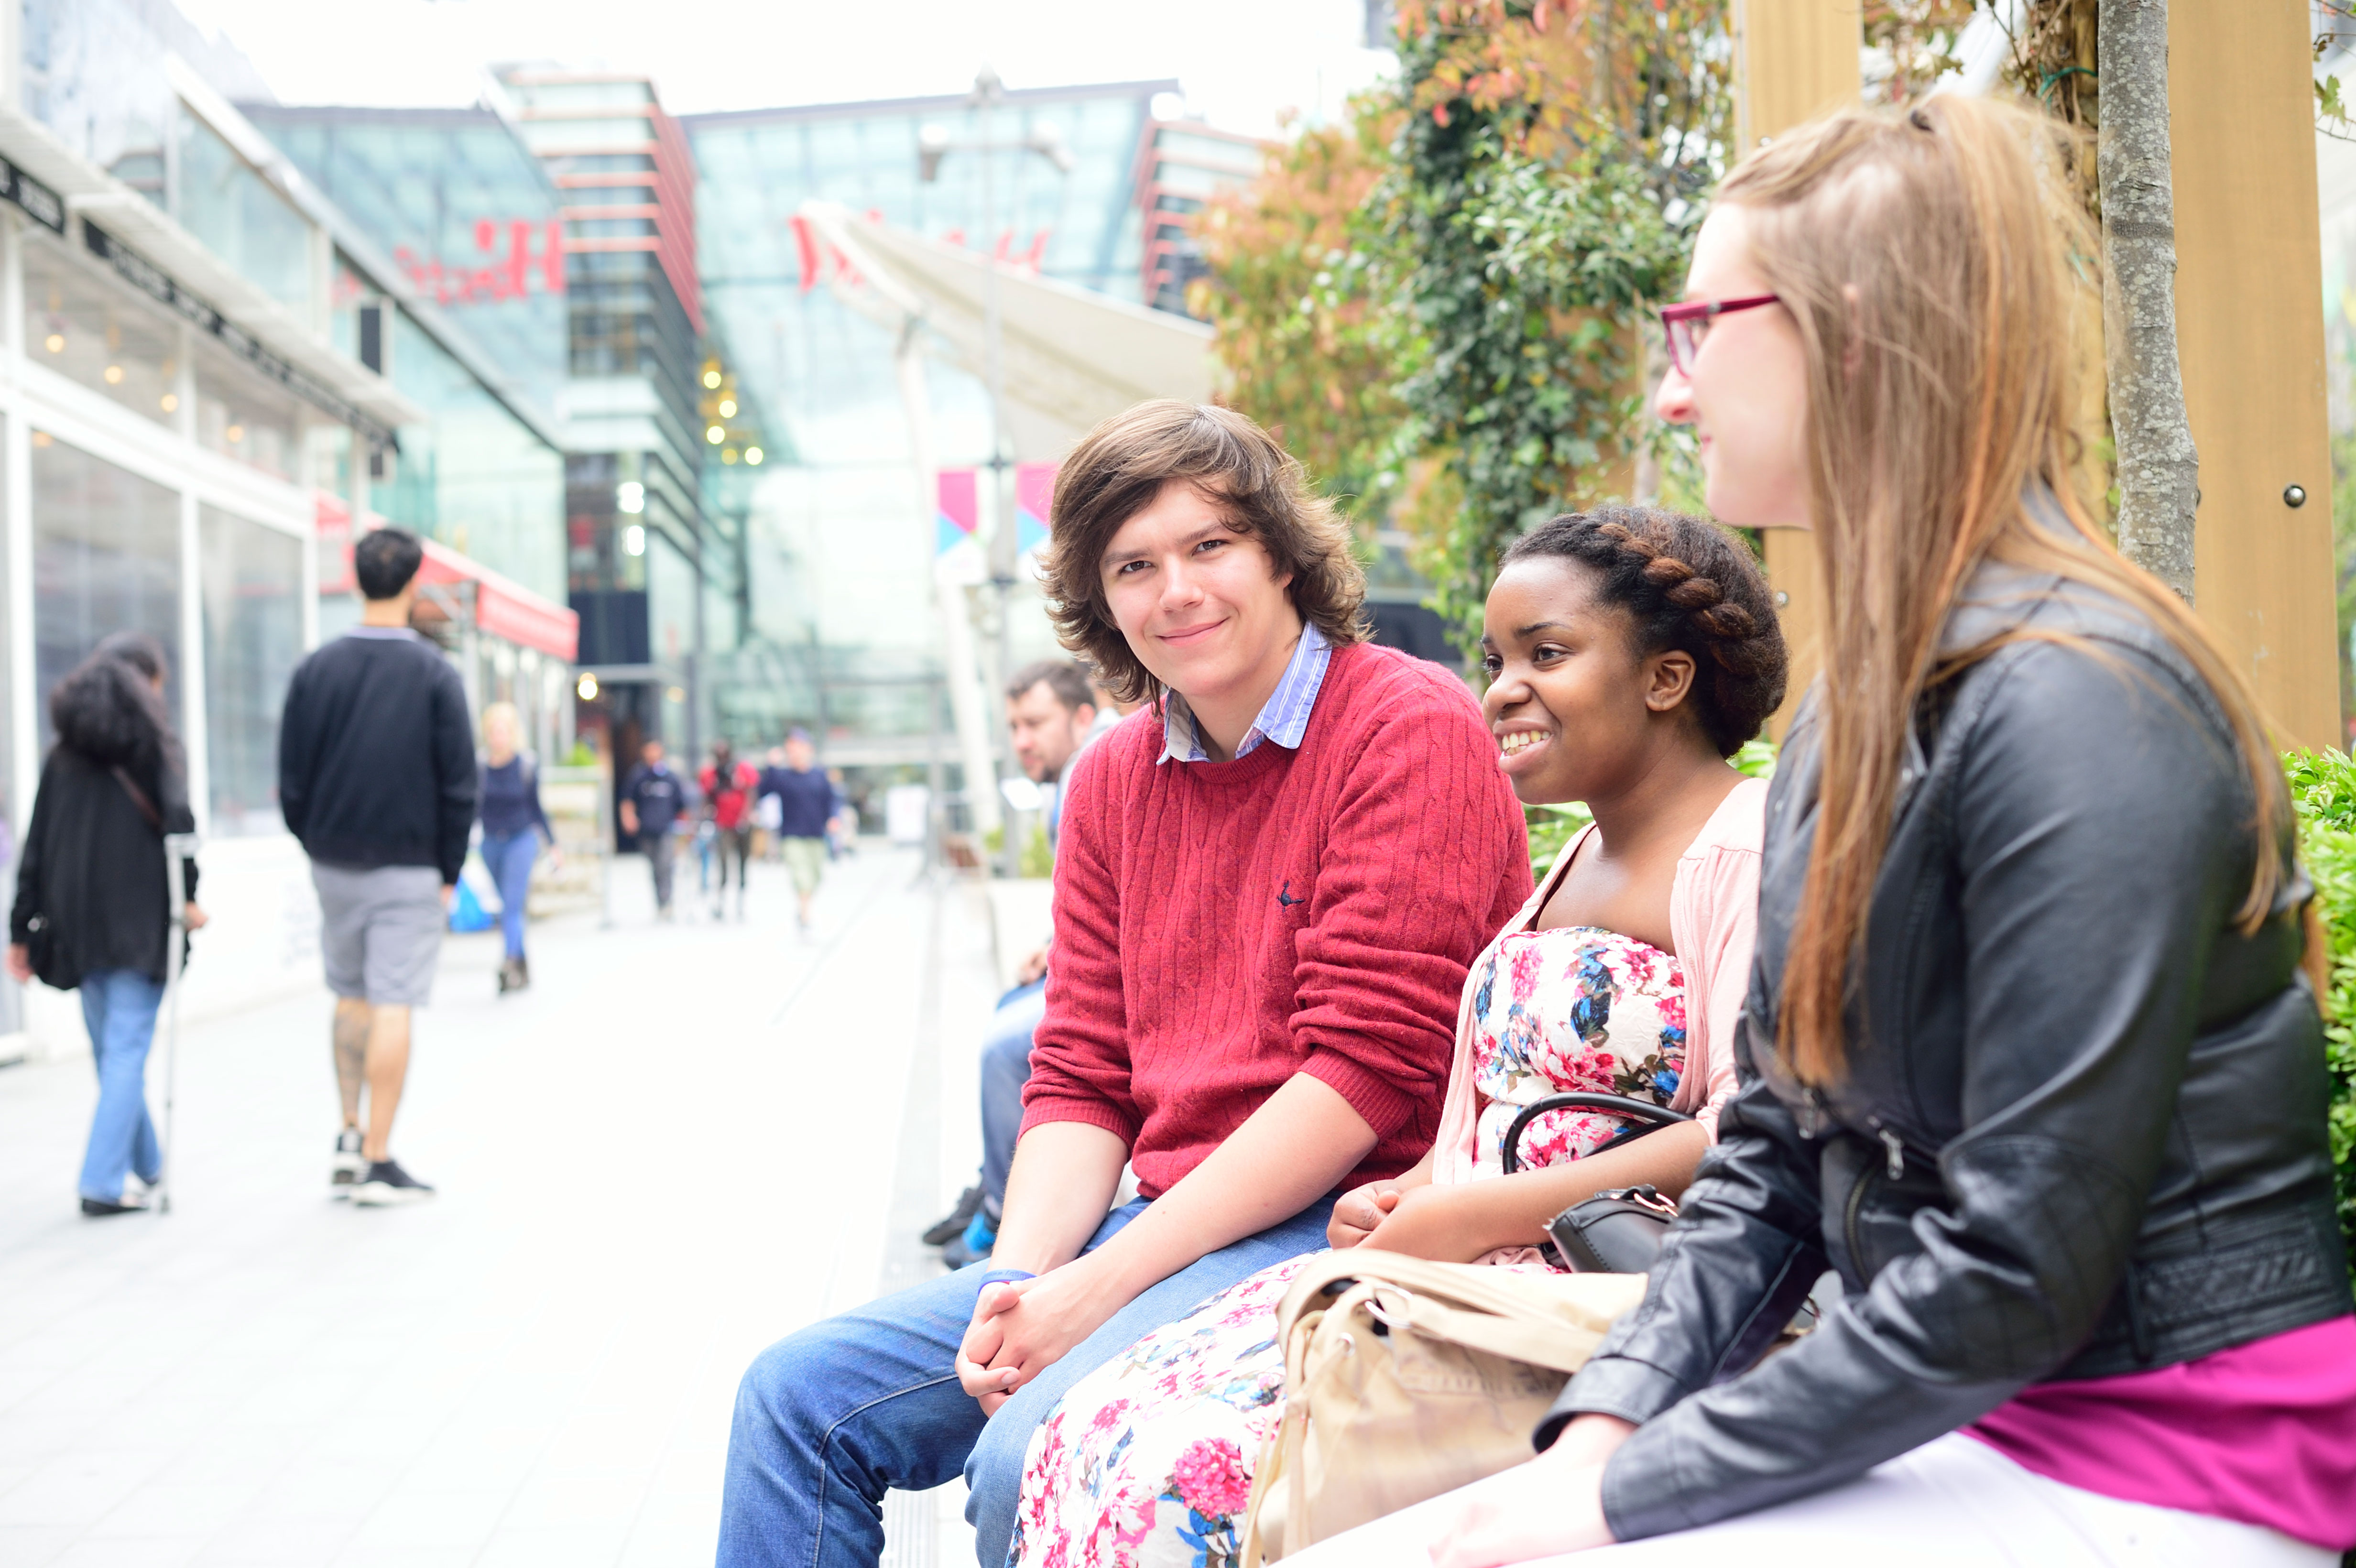 A Londoner's guide: Getting to know Stratford